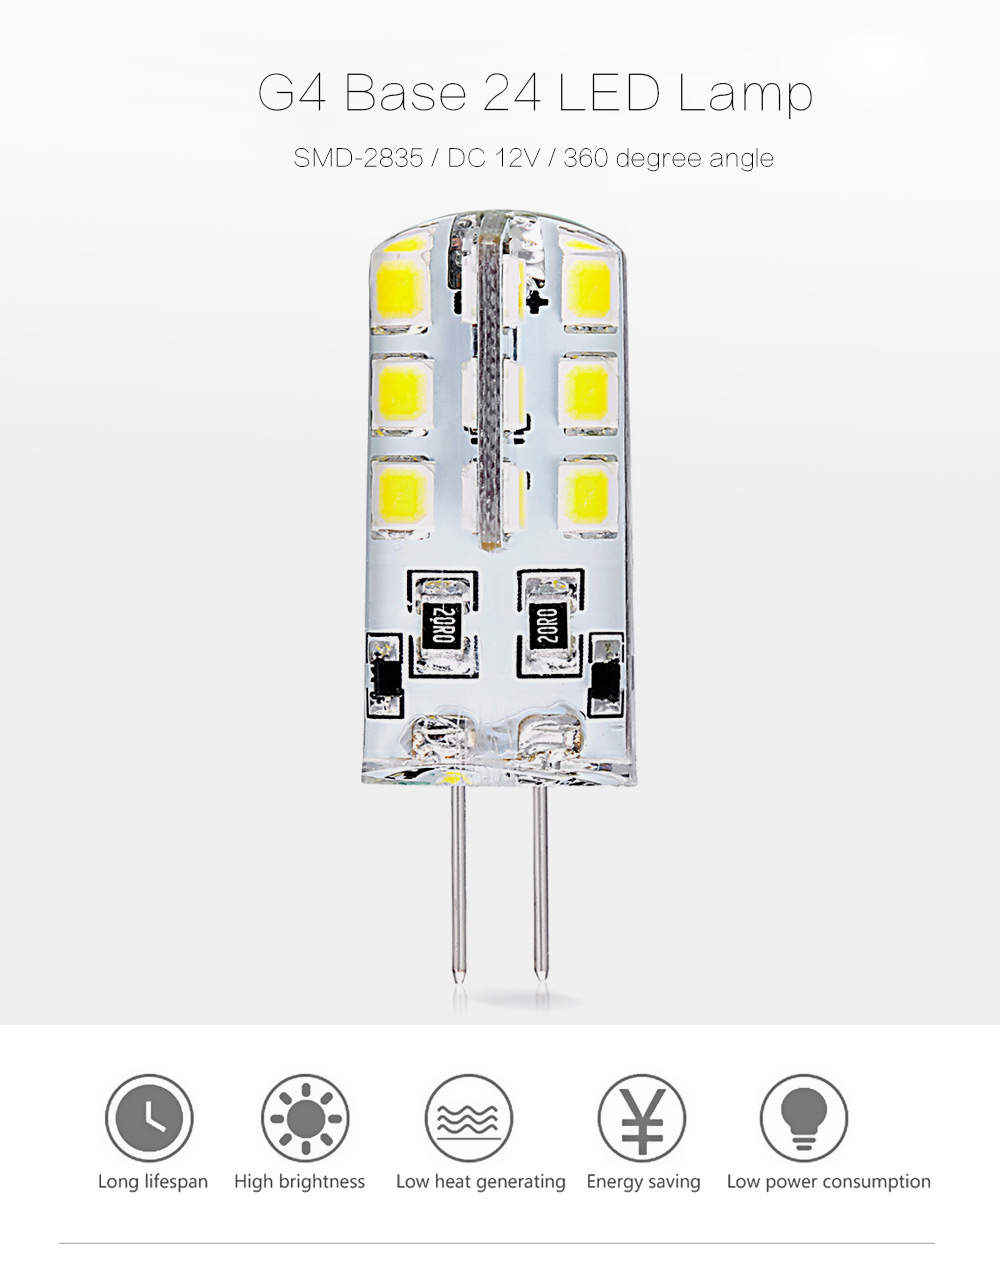 10pcs 5W ( True 1.8 - 2W ) G4 Base 24 LED Lamp DC 12V Warm White Light Undimmable 360 Degrees Beam Angle